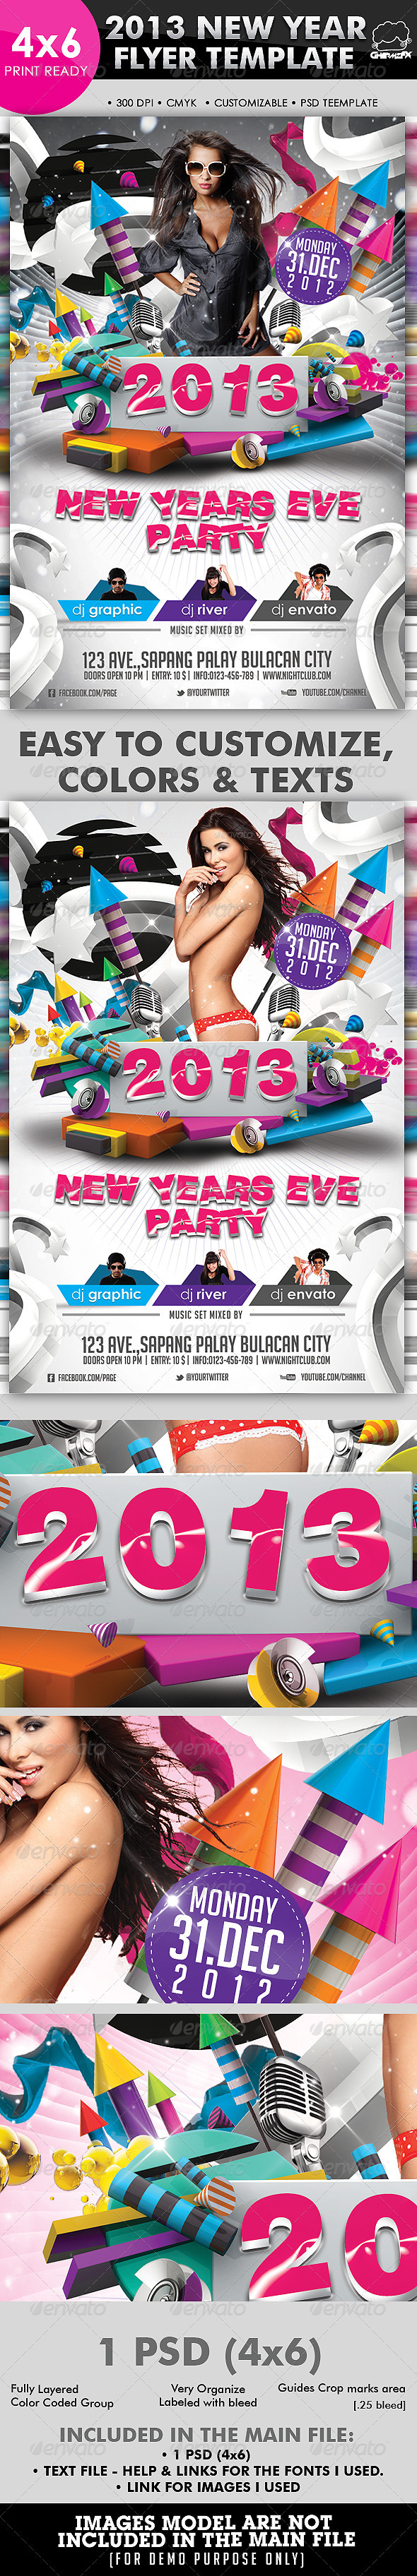 2013 New Year Flyer Template - Clubs & Parties Events